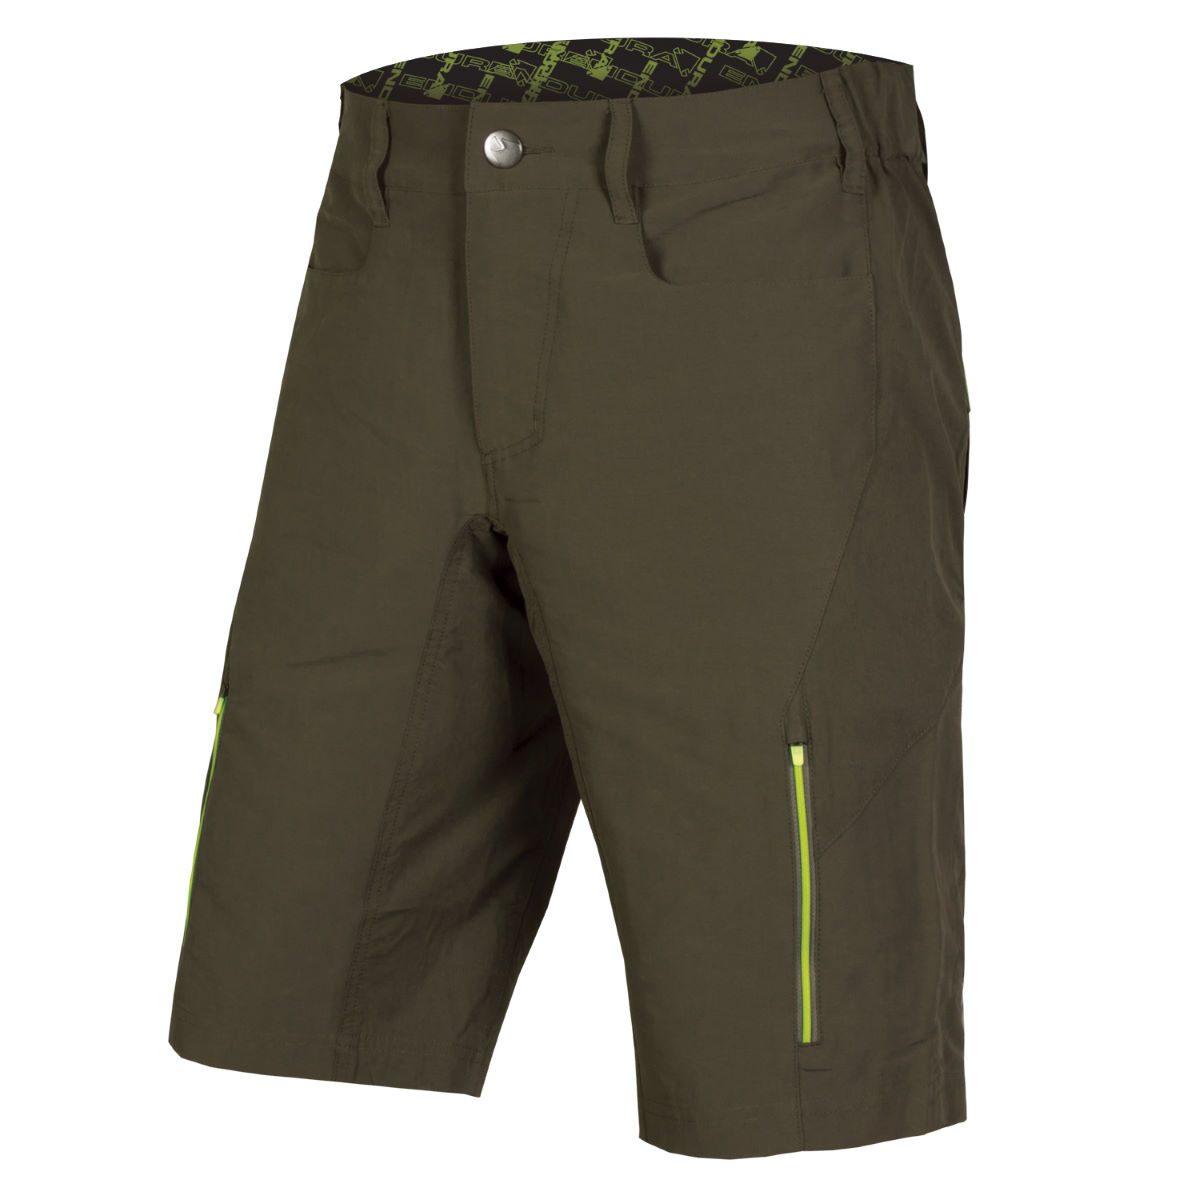 Endura Singletrack III Shorts - XXLarge Khaki | Baggy Cycling Shorts